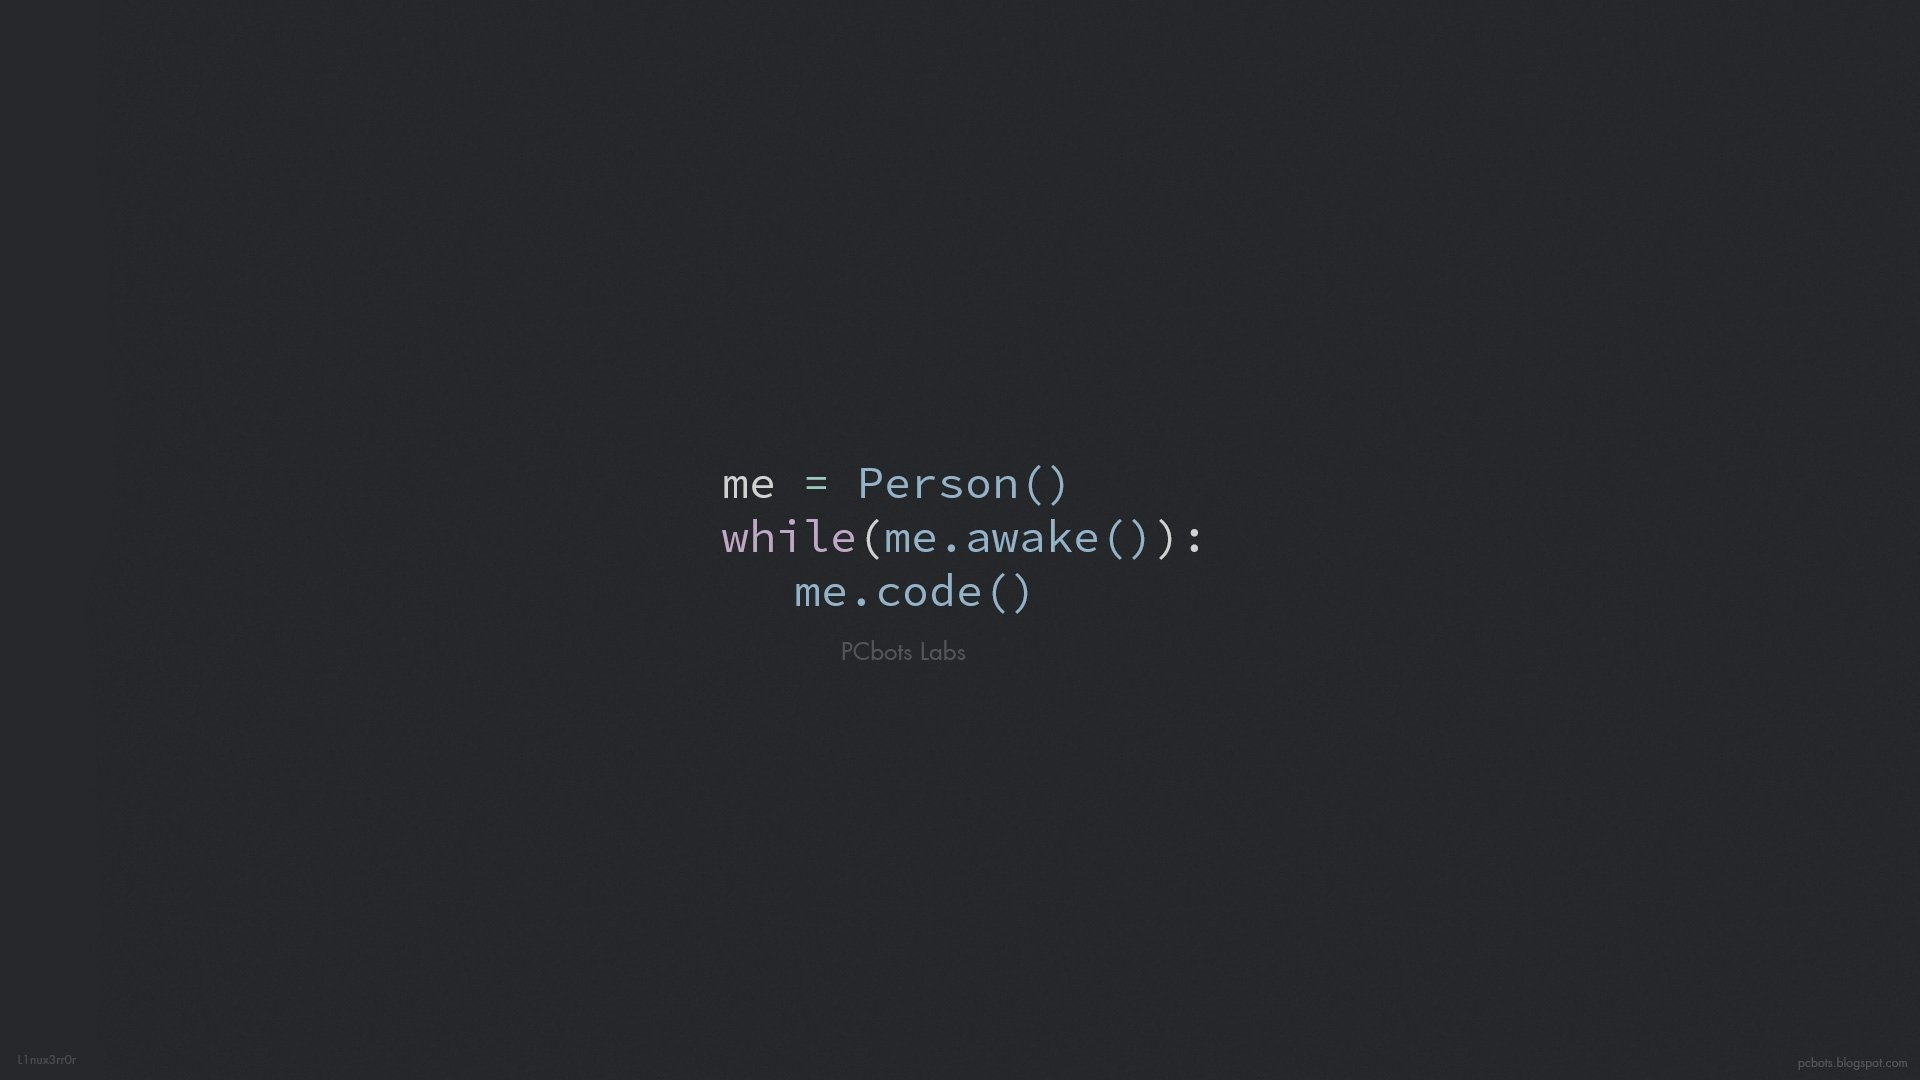 Awke to Code – HD Wallpaper